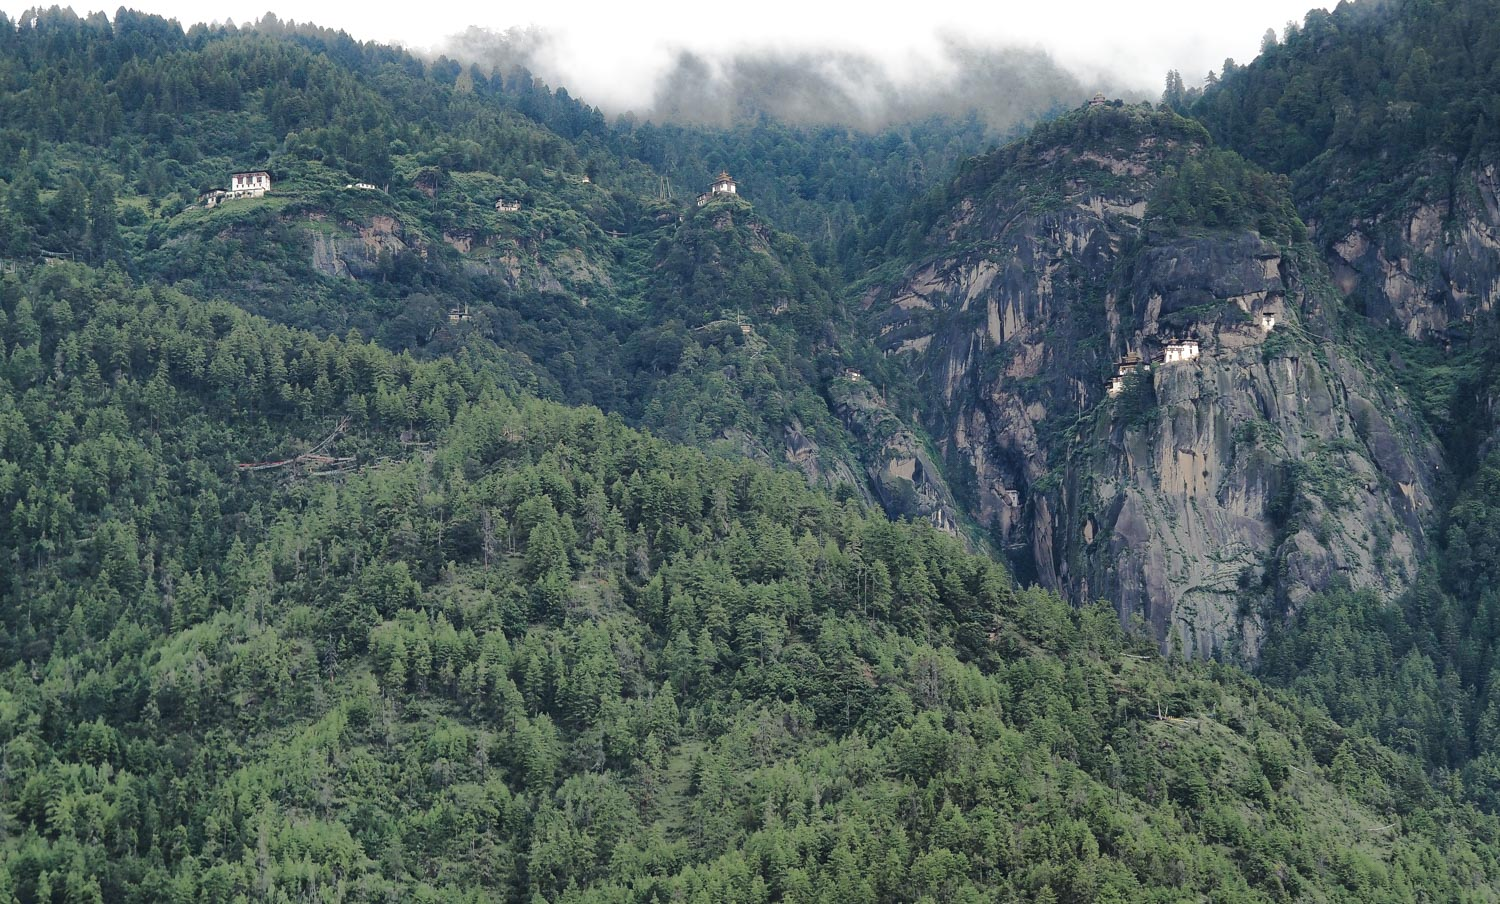 The Tiger Nest up there to the right as seen from the road in Bhutan